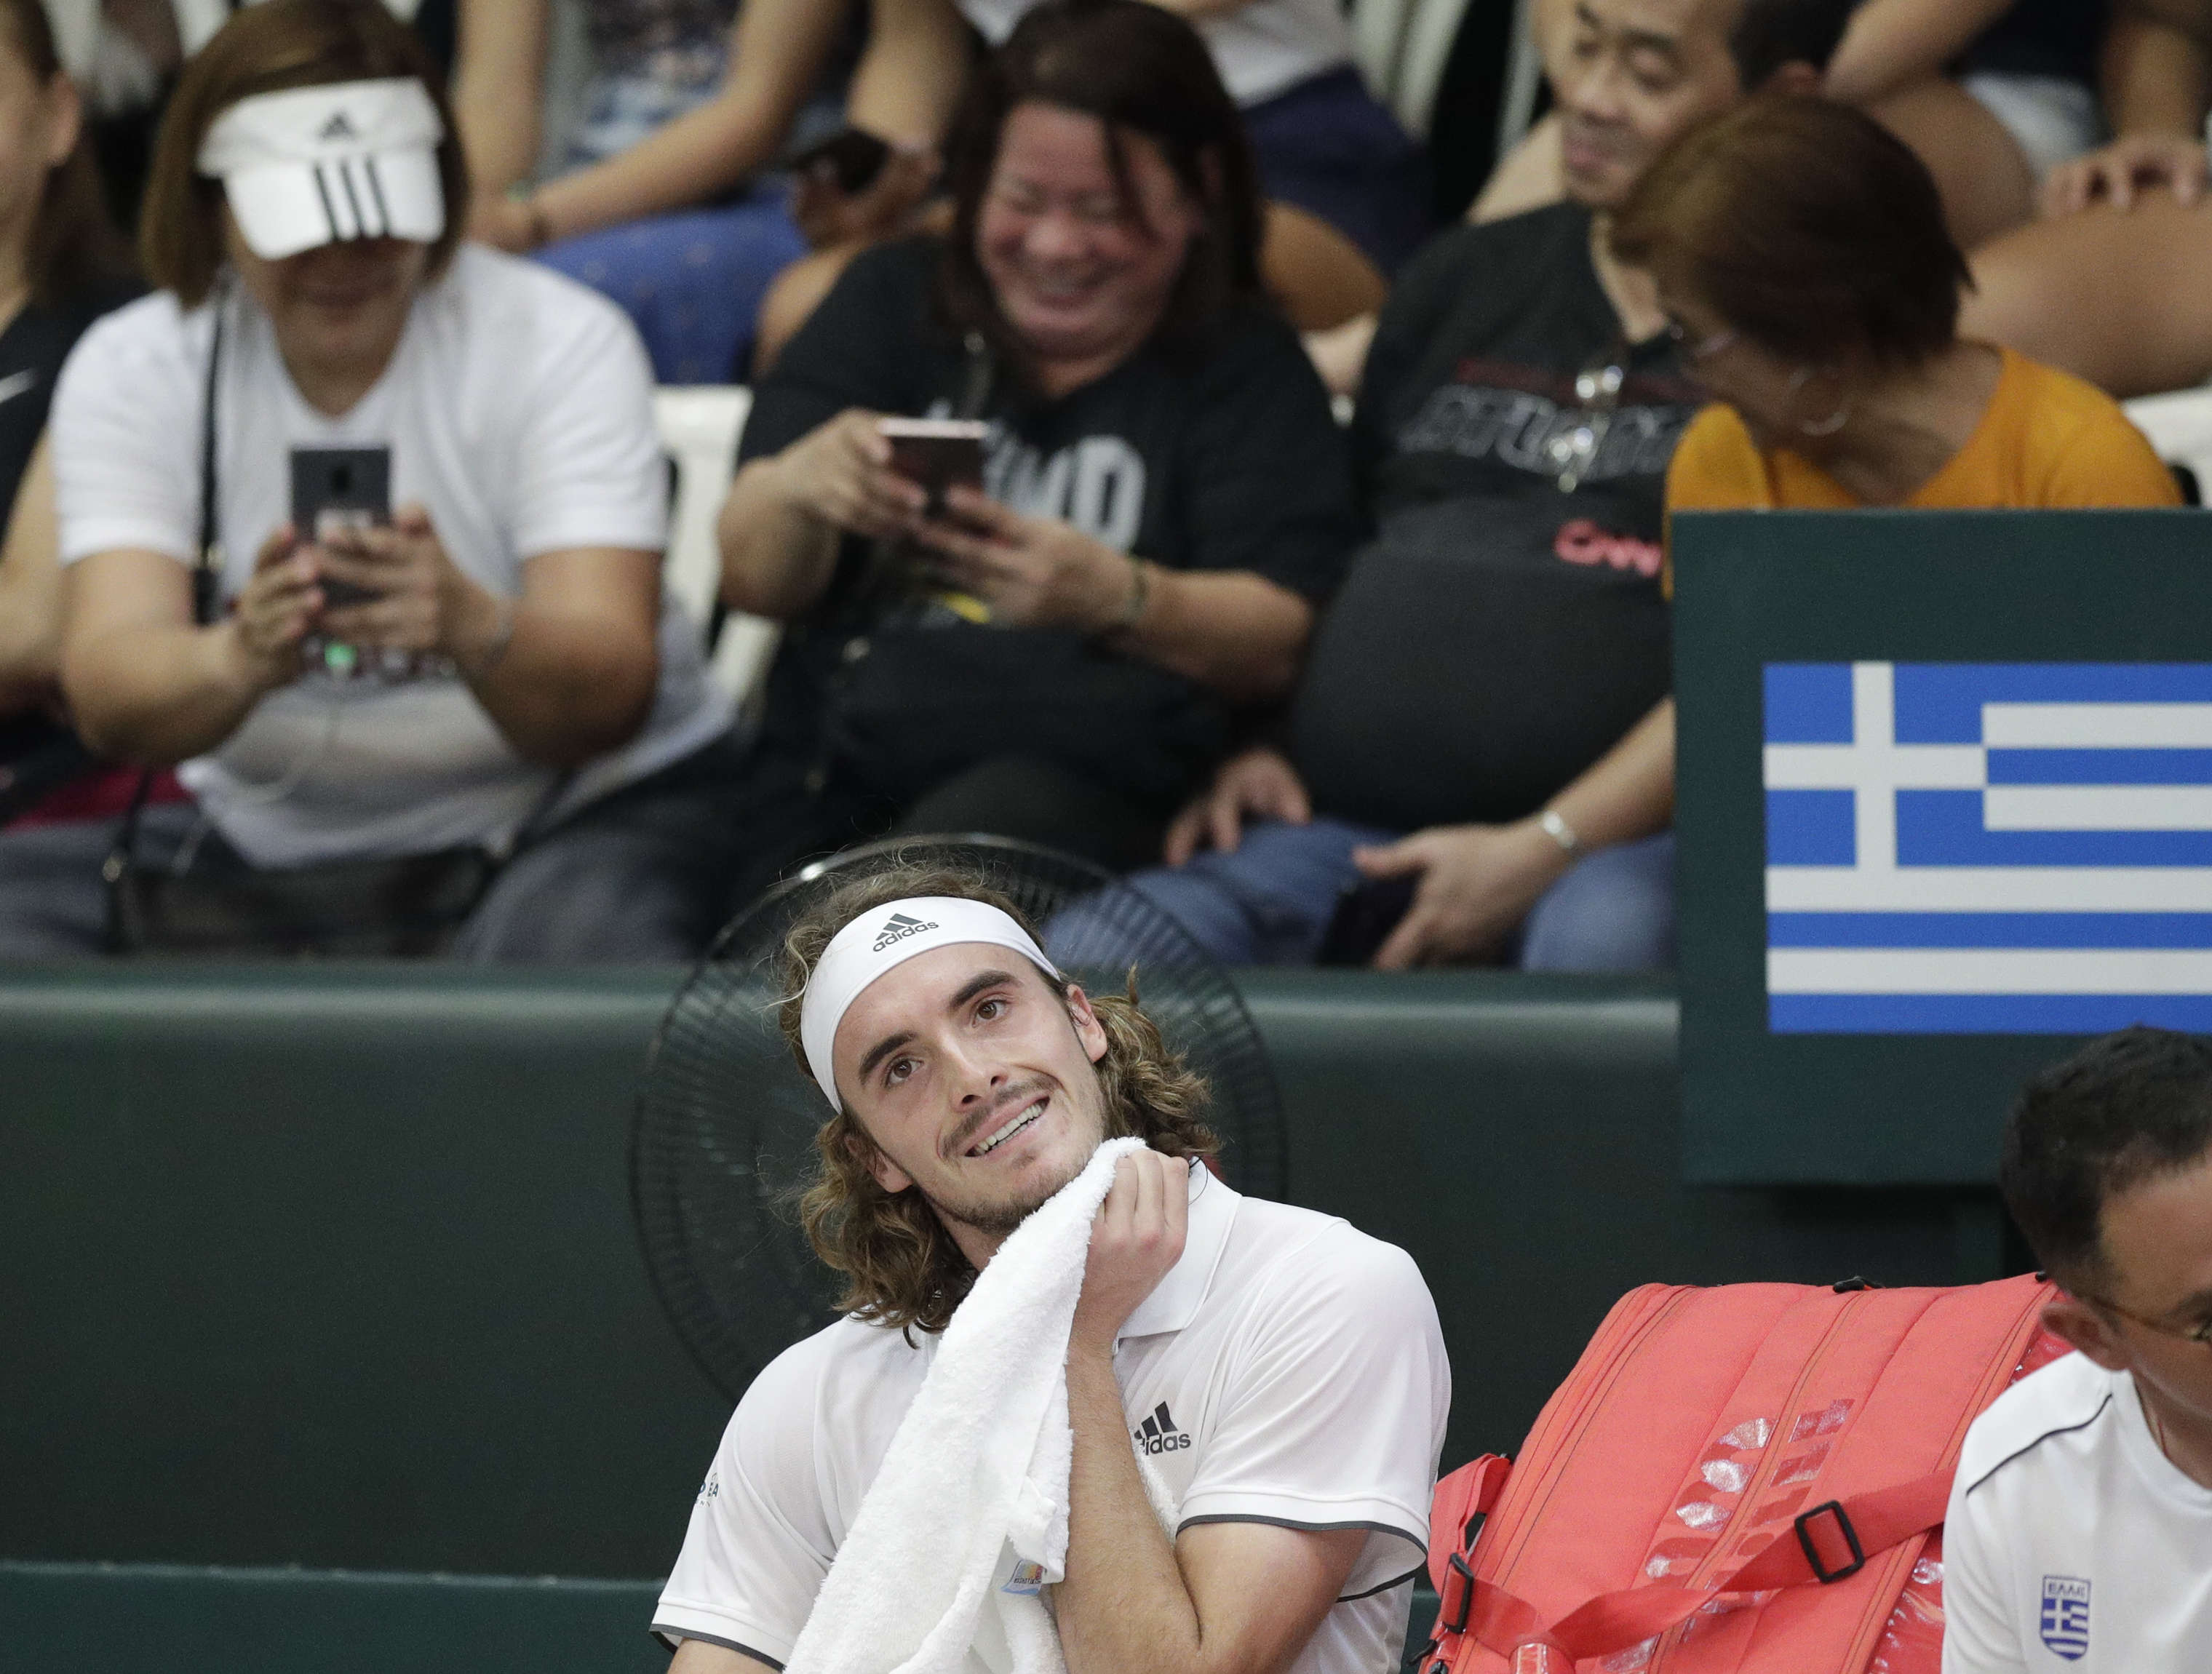 Stefanos Tsitsipas of Greece, wipes sweat during his game against Alberto Lim of the Philippines at the Davis Cup World Group II play-offs first round singles match in Manila, Philippines